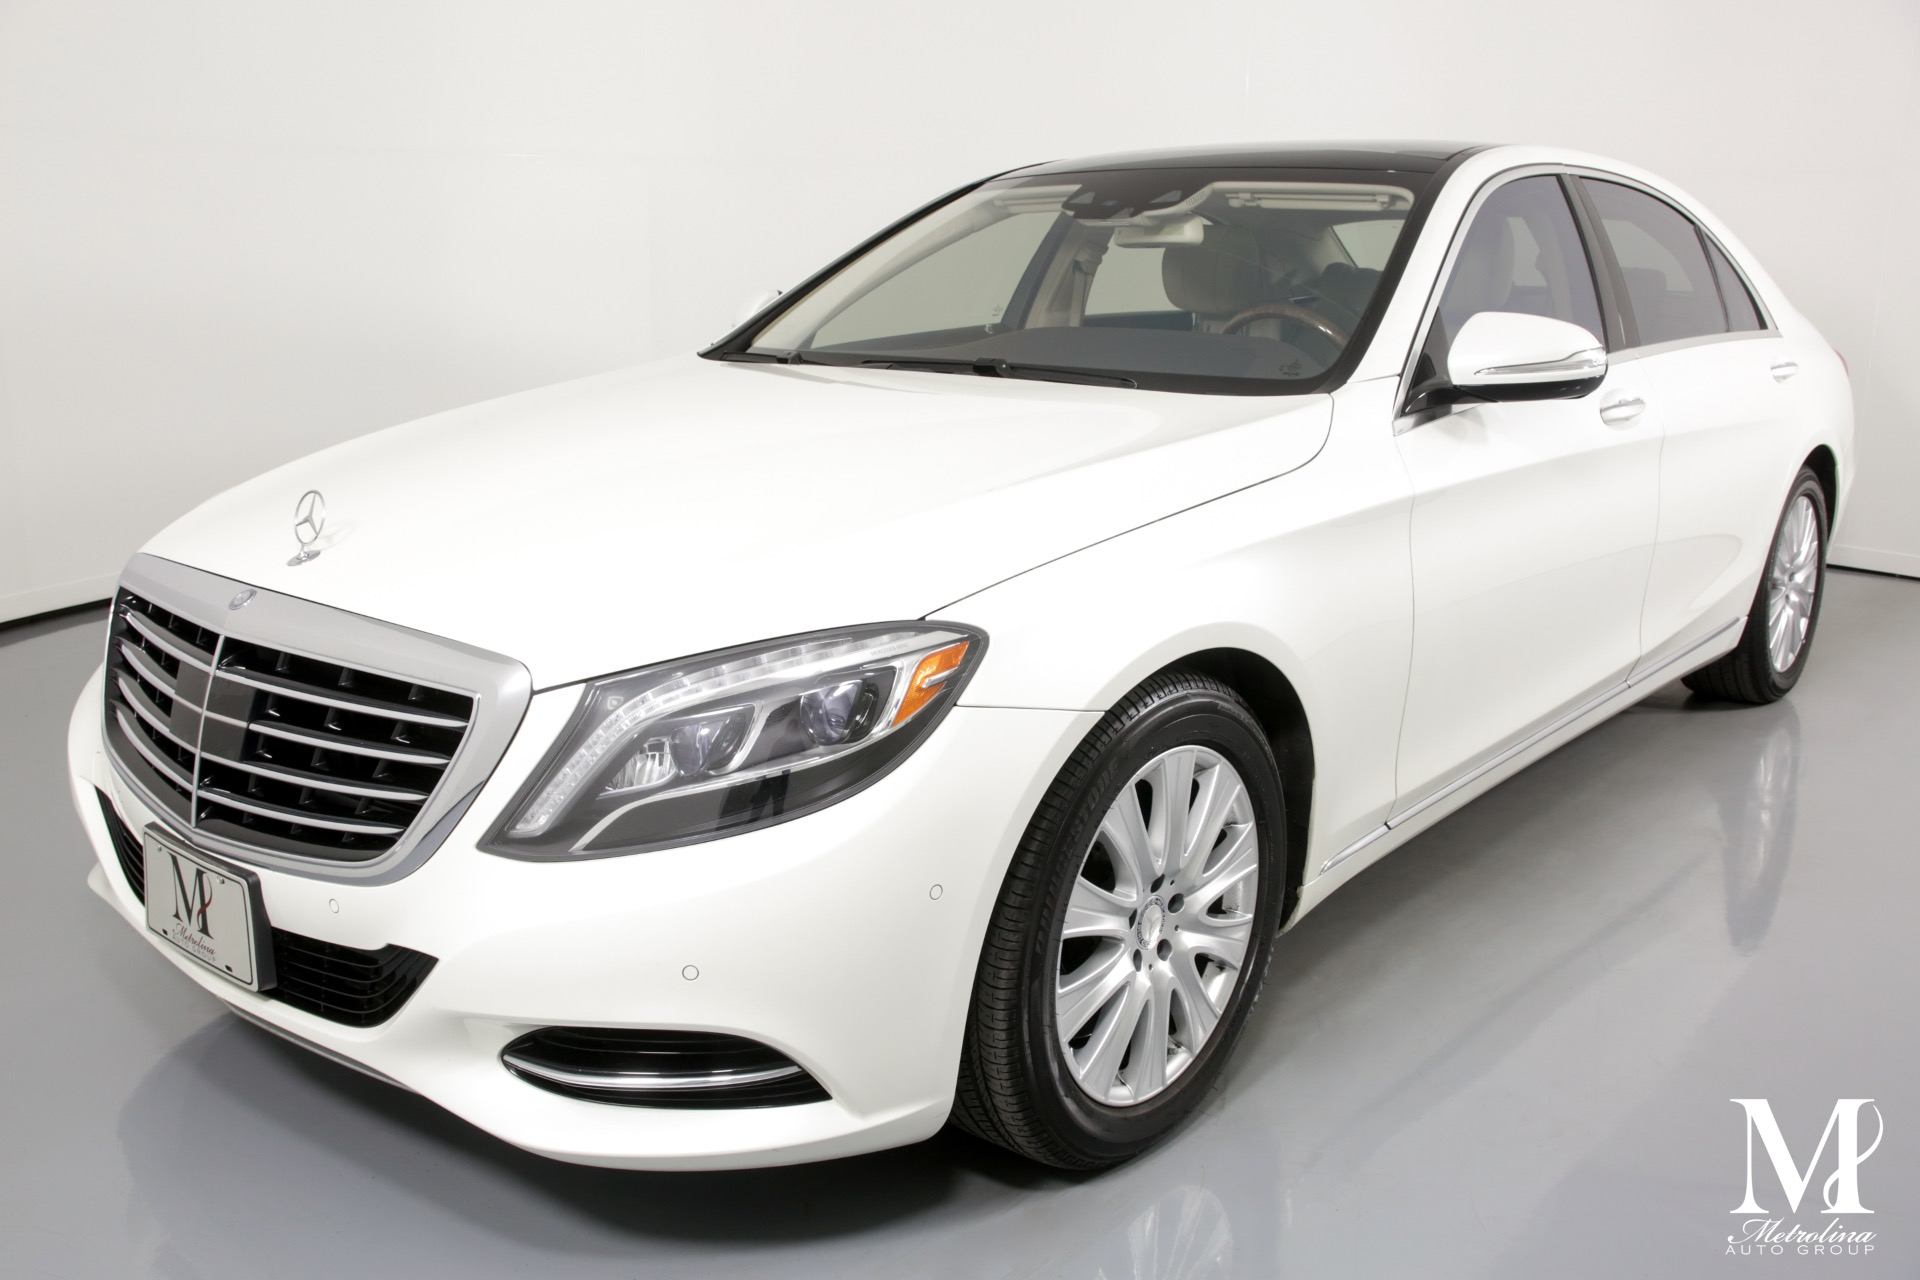 Used 2014 Mercedes-Benz S-Class S 550 4MATIC for sale $36,456 at Metrolina Auto Group in Charlotte NC 28217 - 4